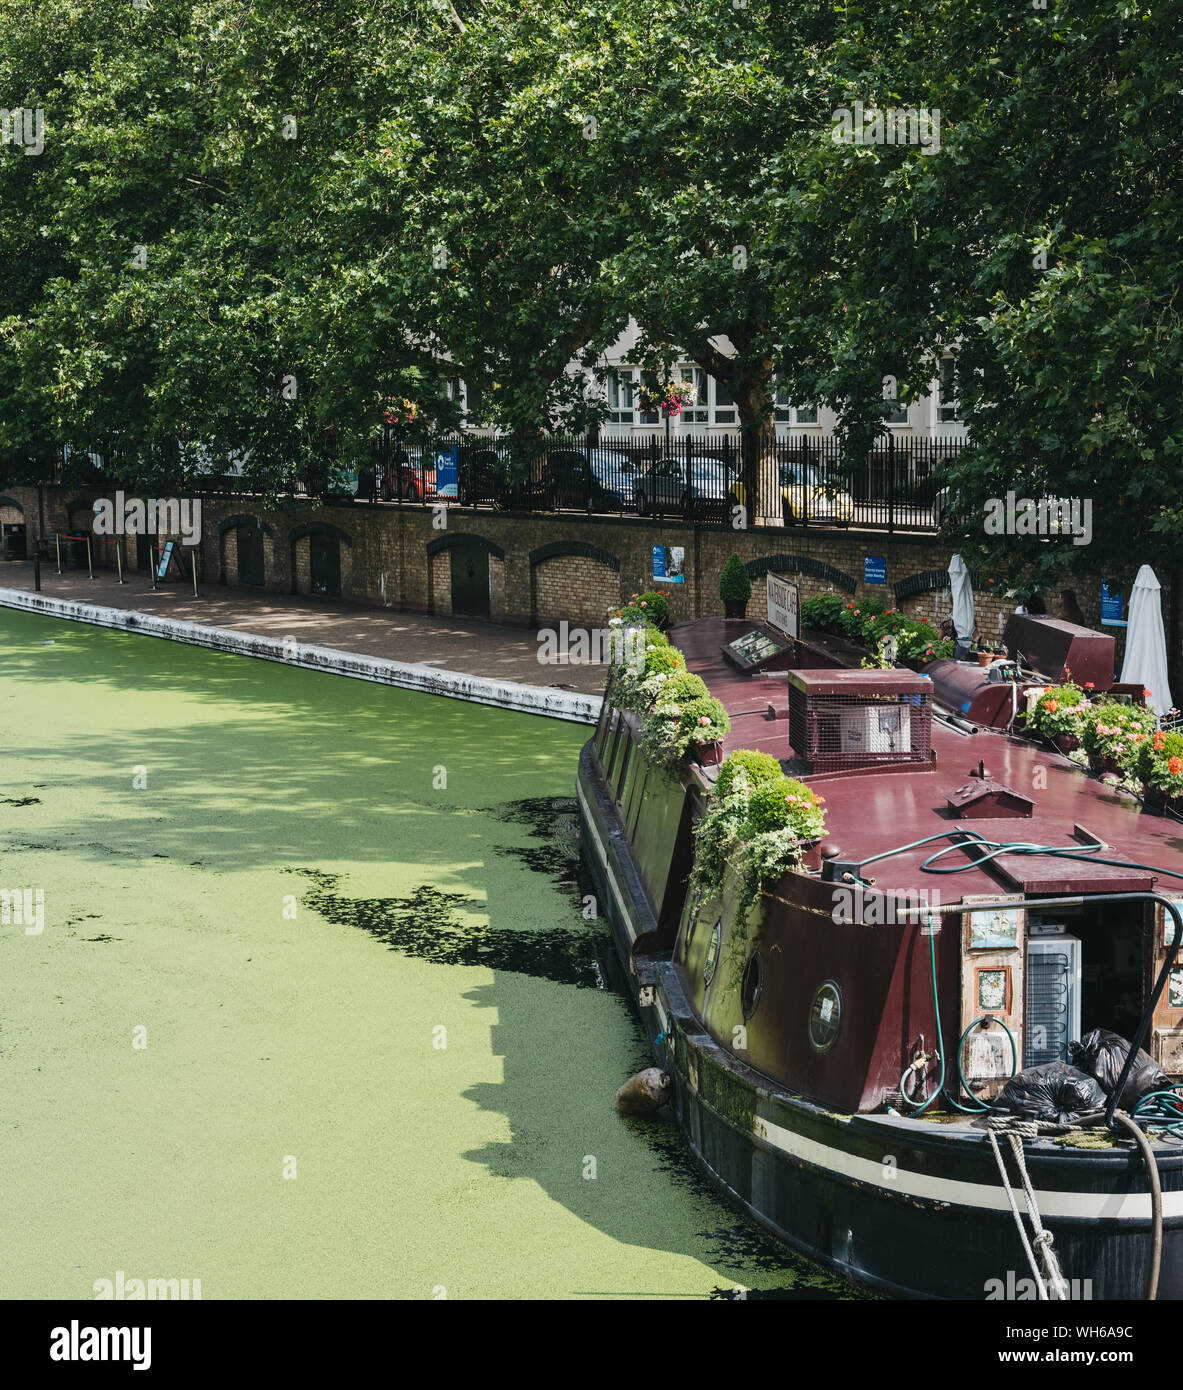 London, UK - July 18, 2019: View of Waterside boat cafe moored on Regents Canal in Little Venice, London, a tranquil area of the city where the Grand Stock Photo